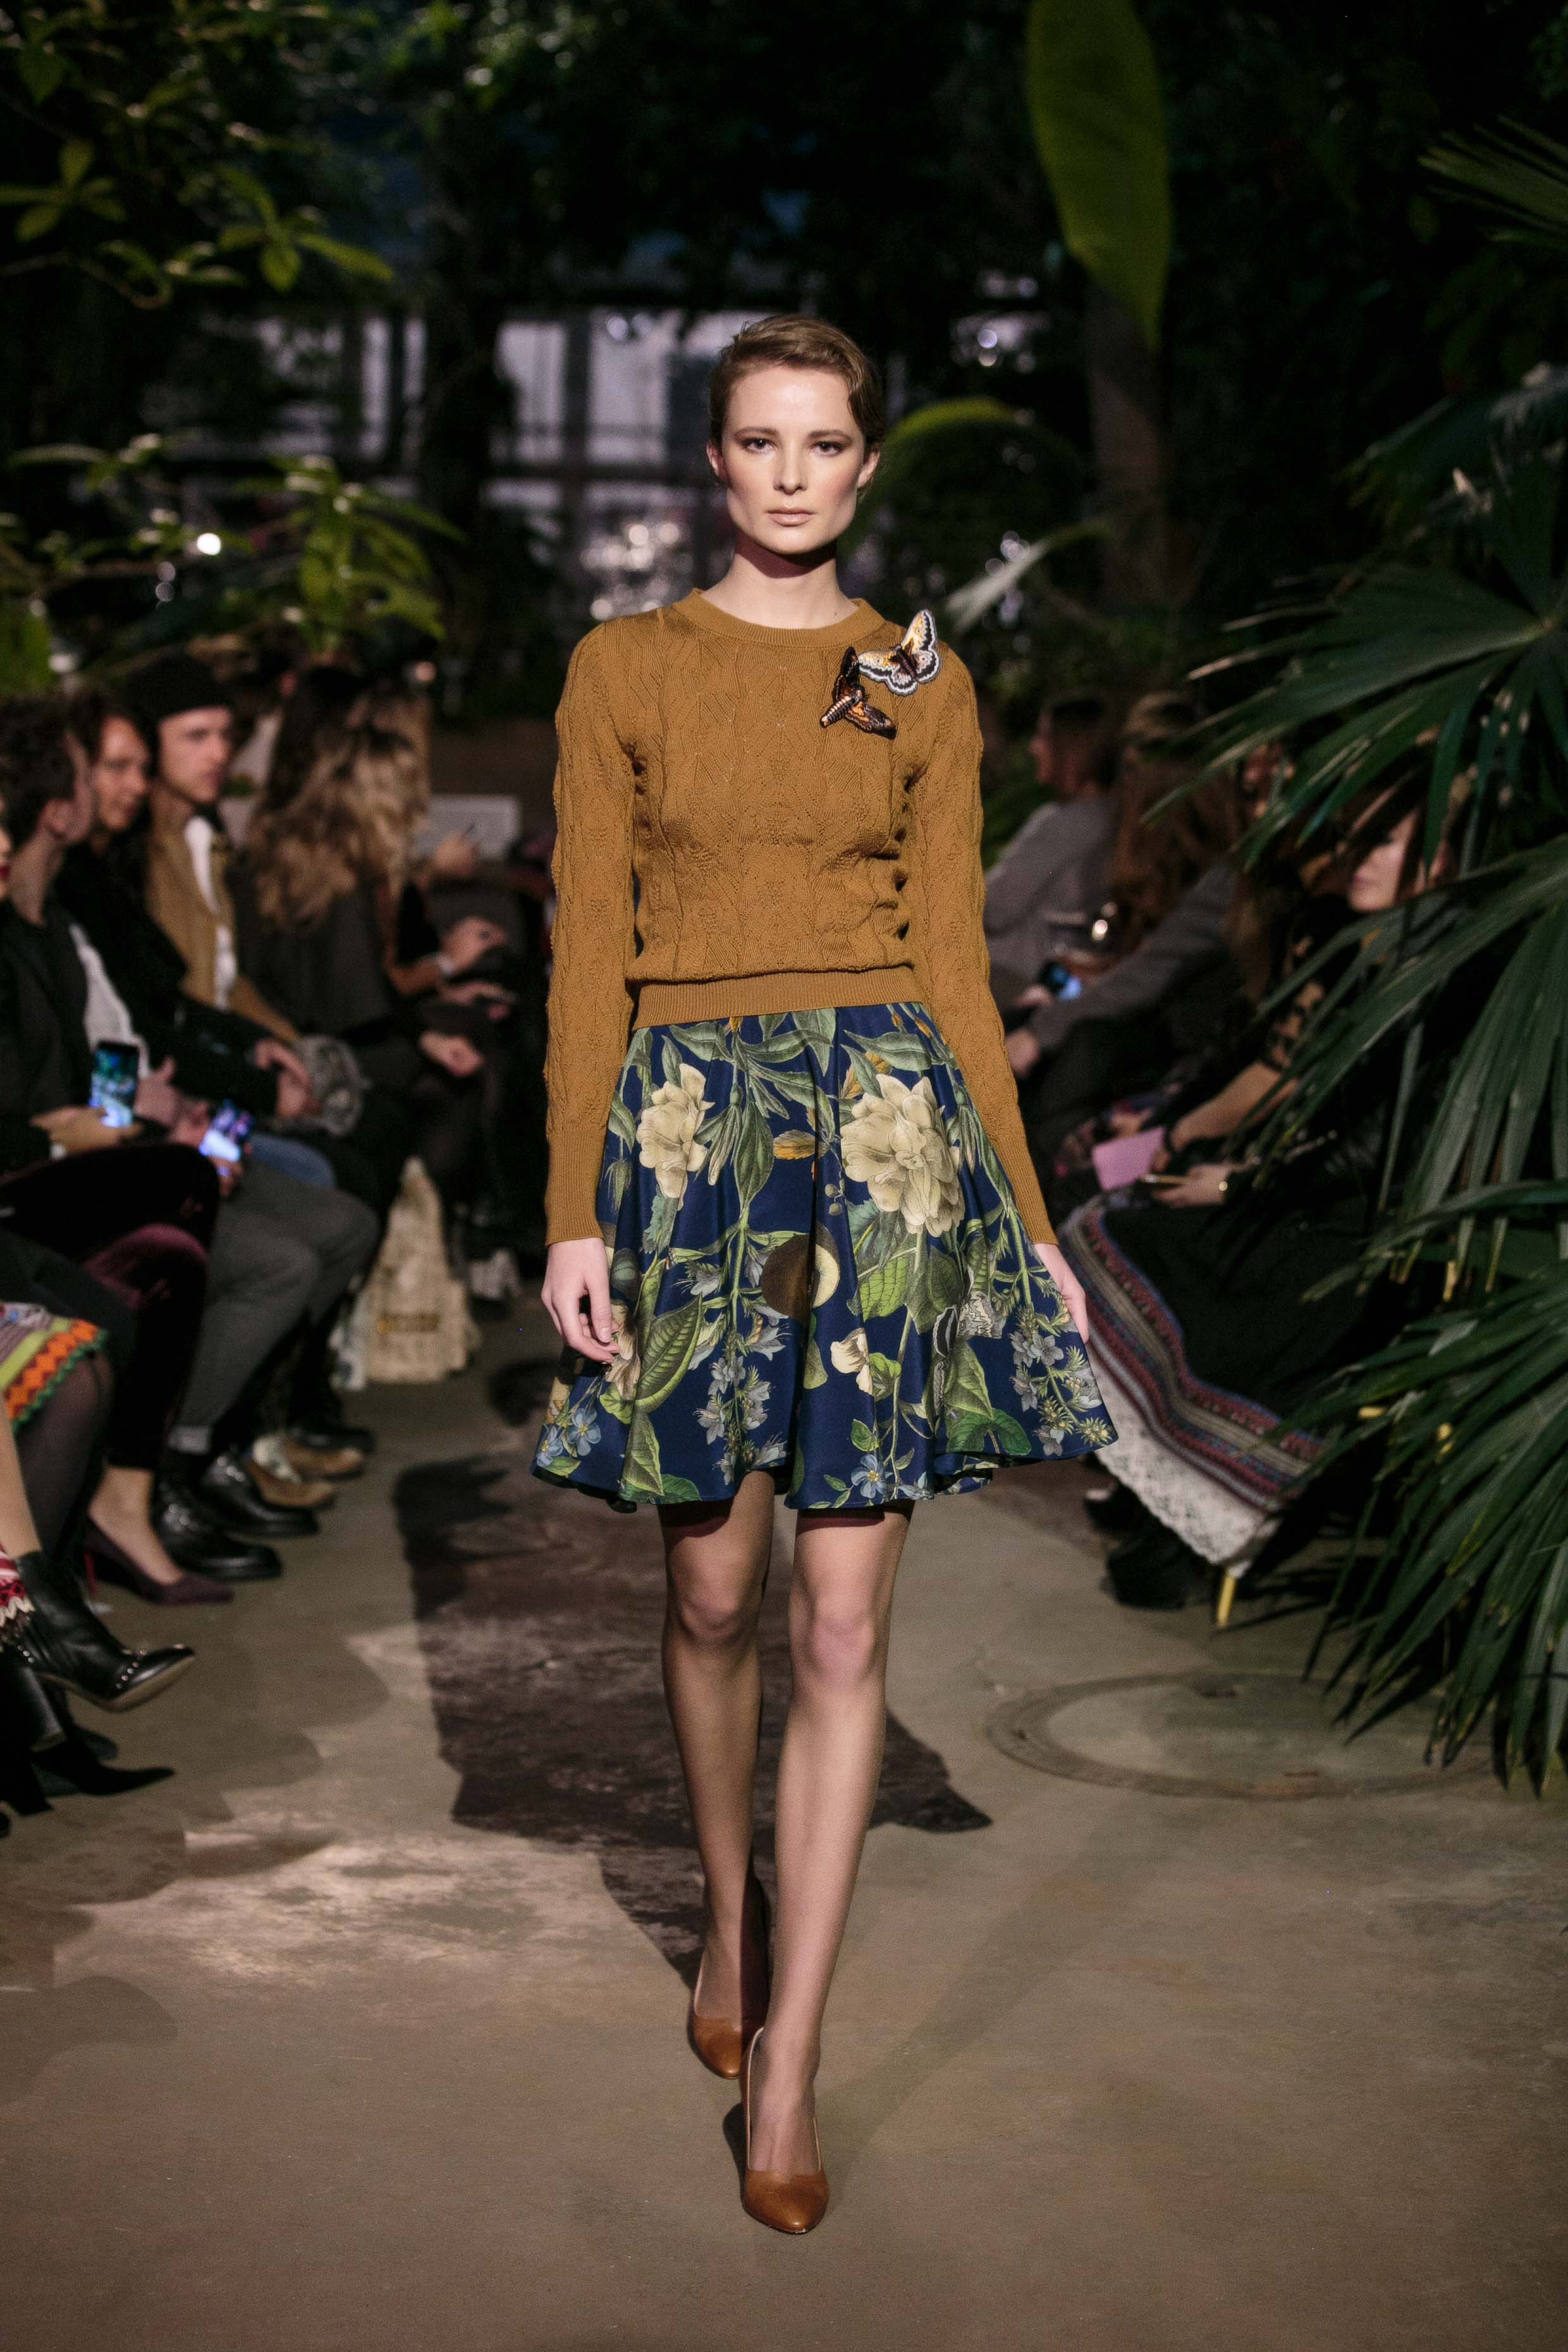 Herbst winter Trends 2018 Floral Prints Modeblog Lena Hoschek RUNWAY AUTUMN WINTER 2018 2019 WINTERGARDEN 4